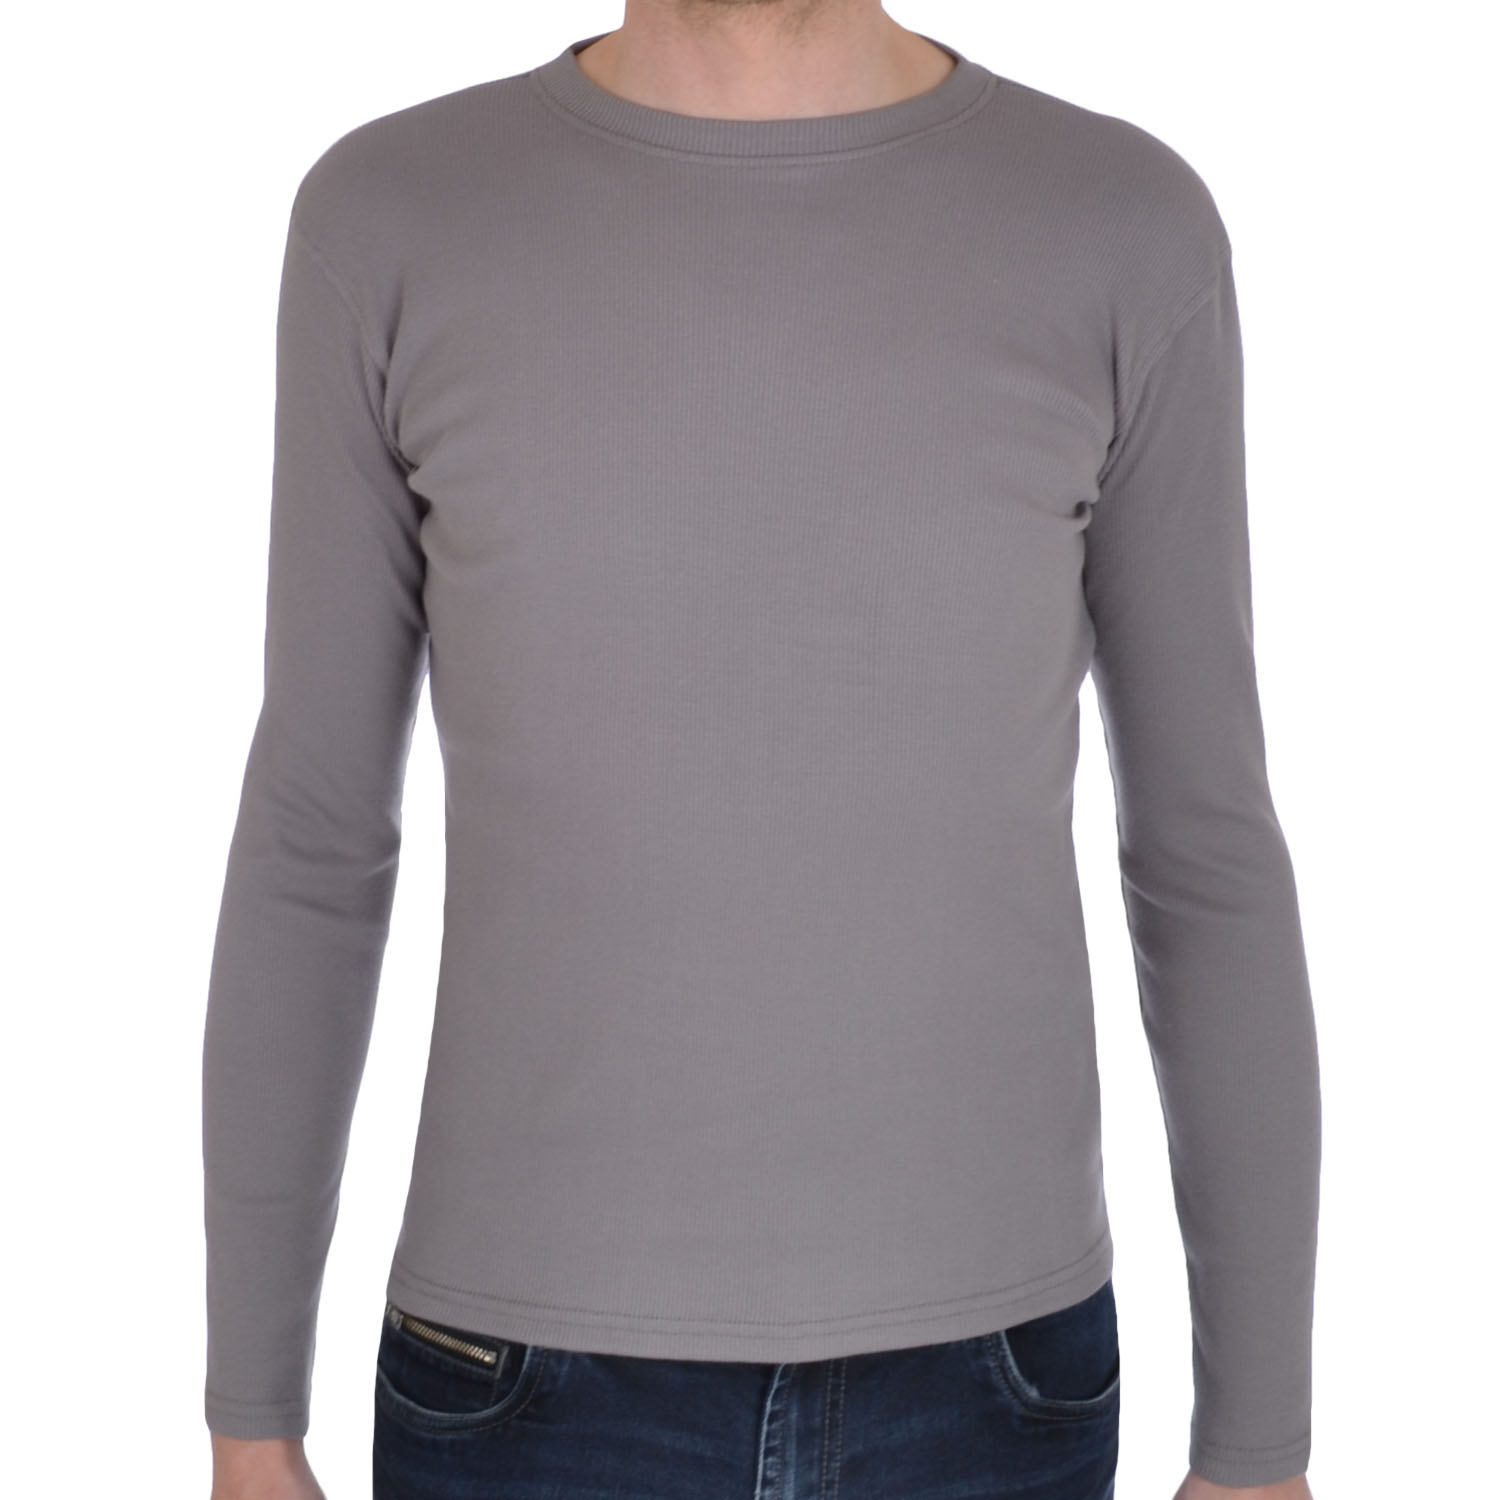 Mens Ribbed Cotton Round Neck Long Sleeve Stretch T Shirt Tee Top ...